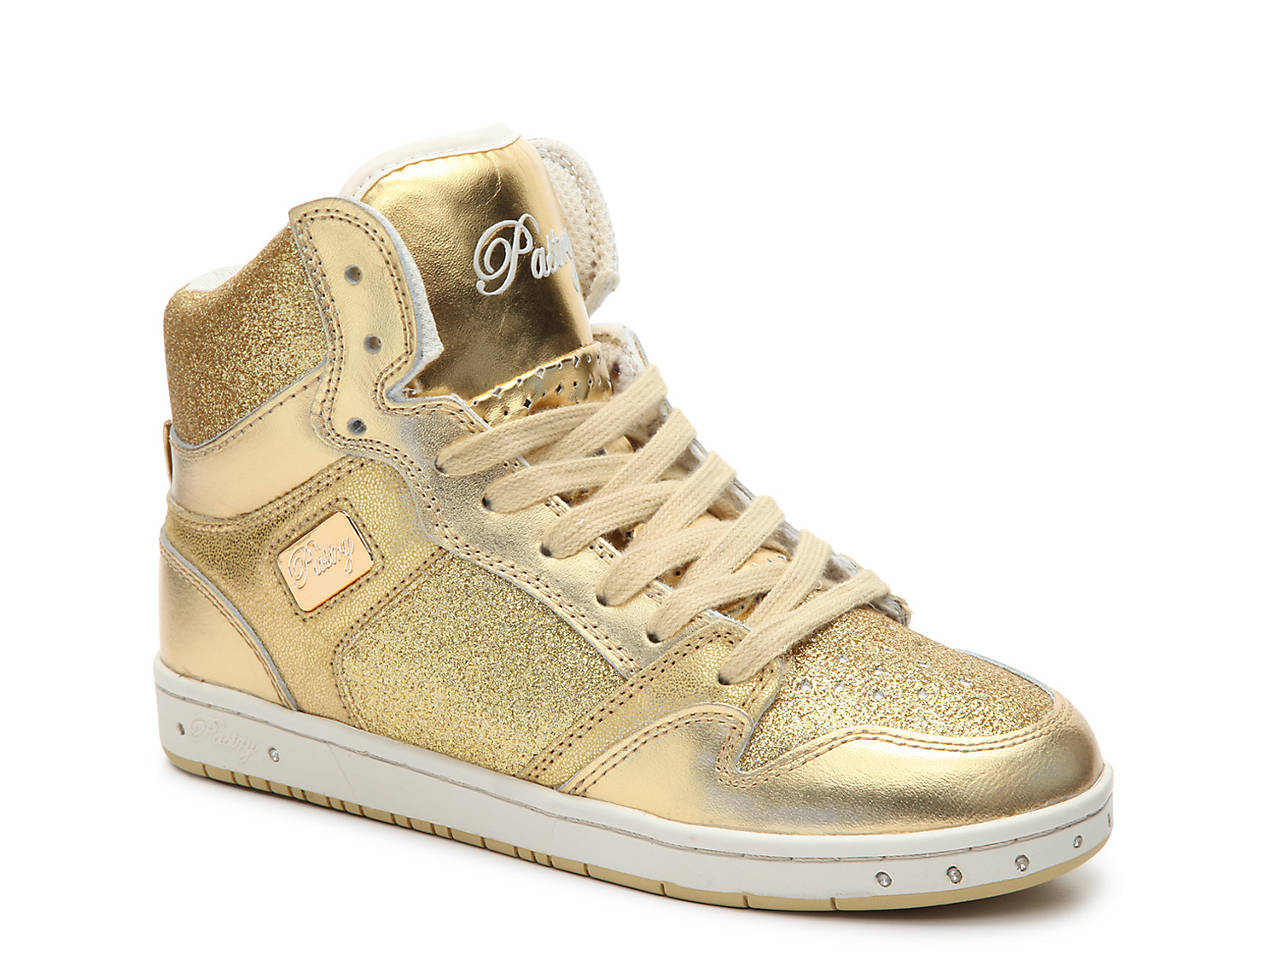 068e8a94a451ac Pastry Glam Pie High-Top Sneaker Women's Shoes | DSW